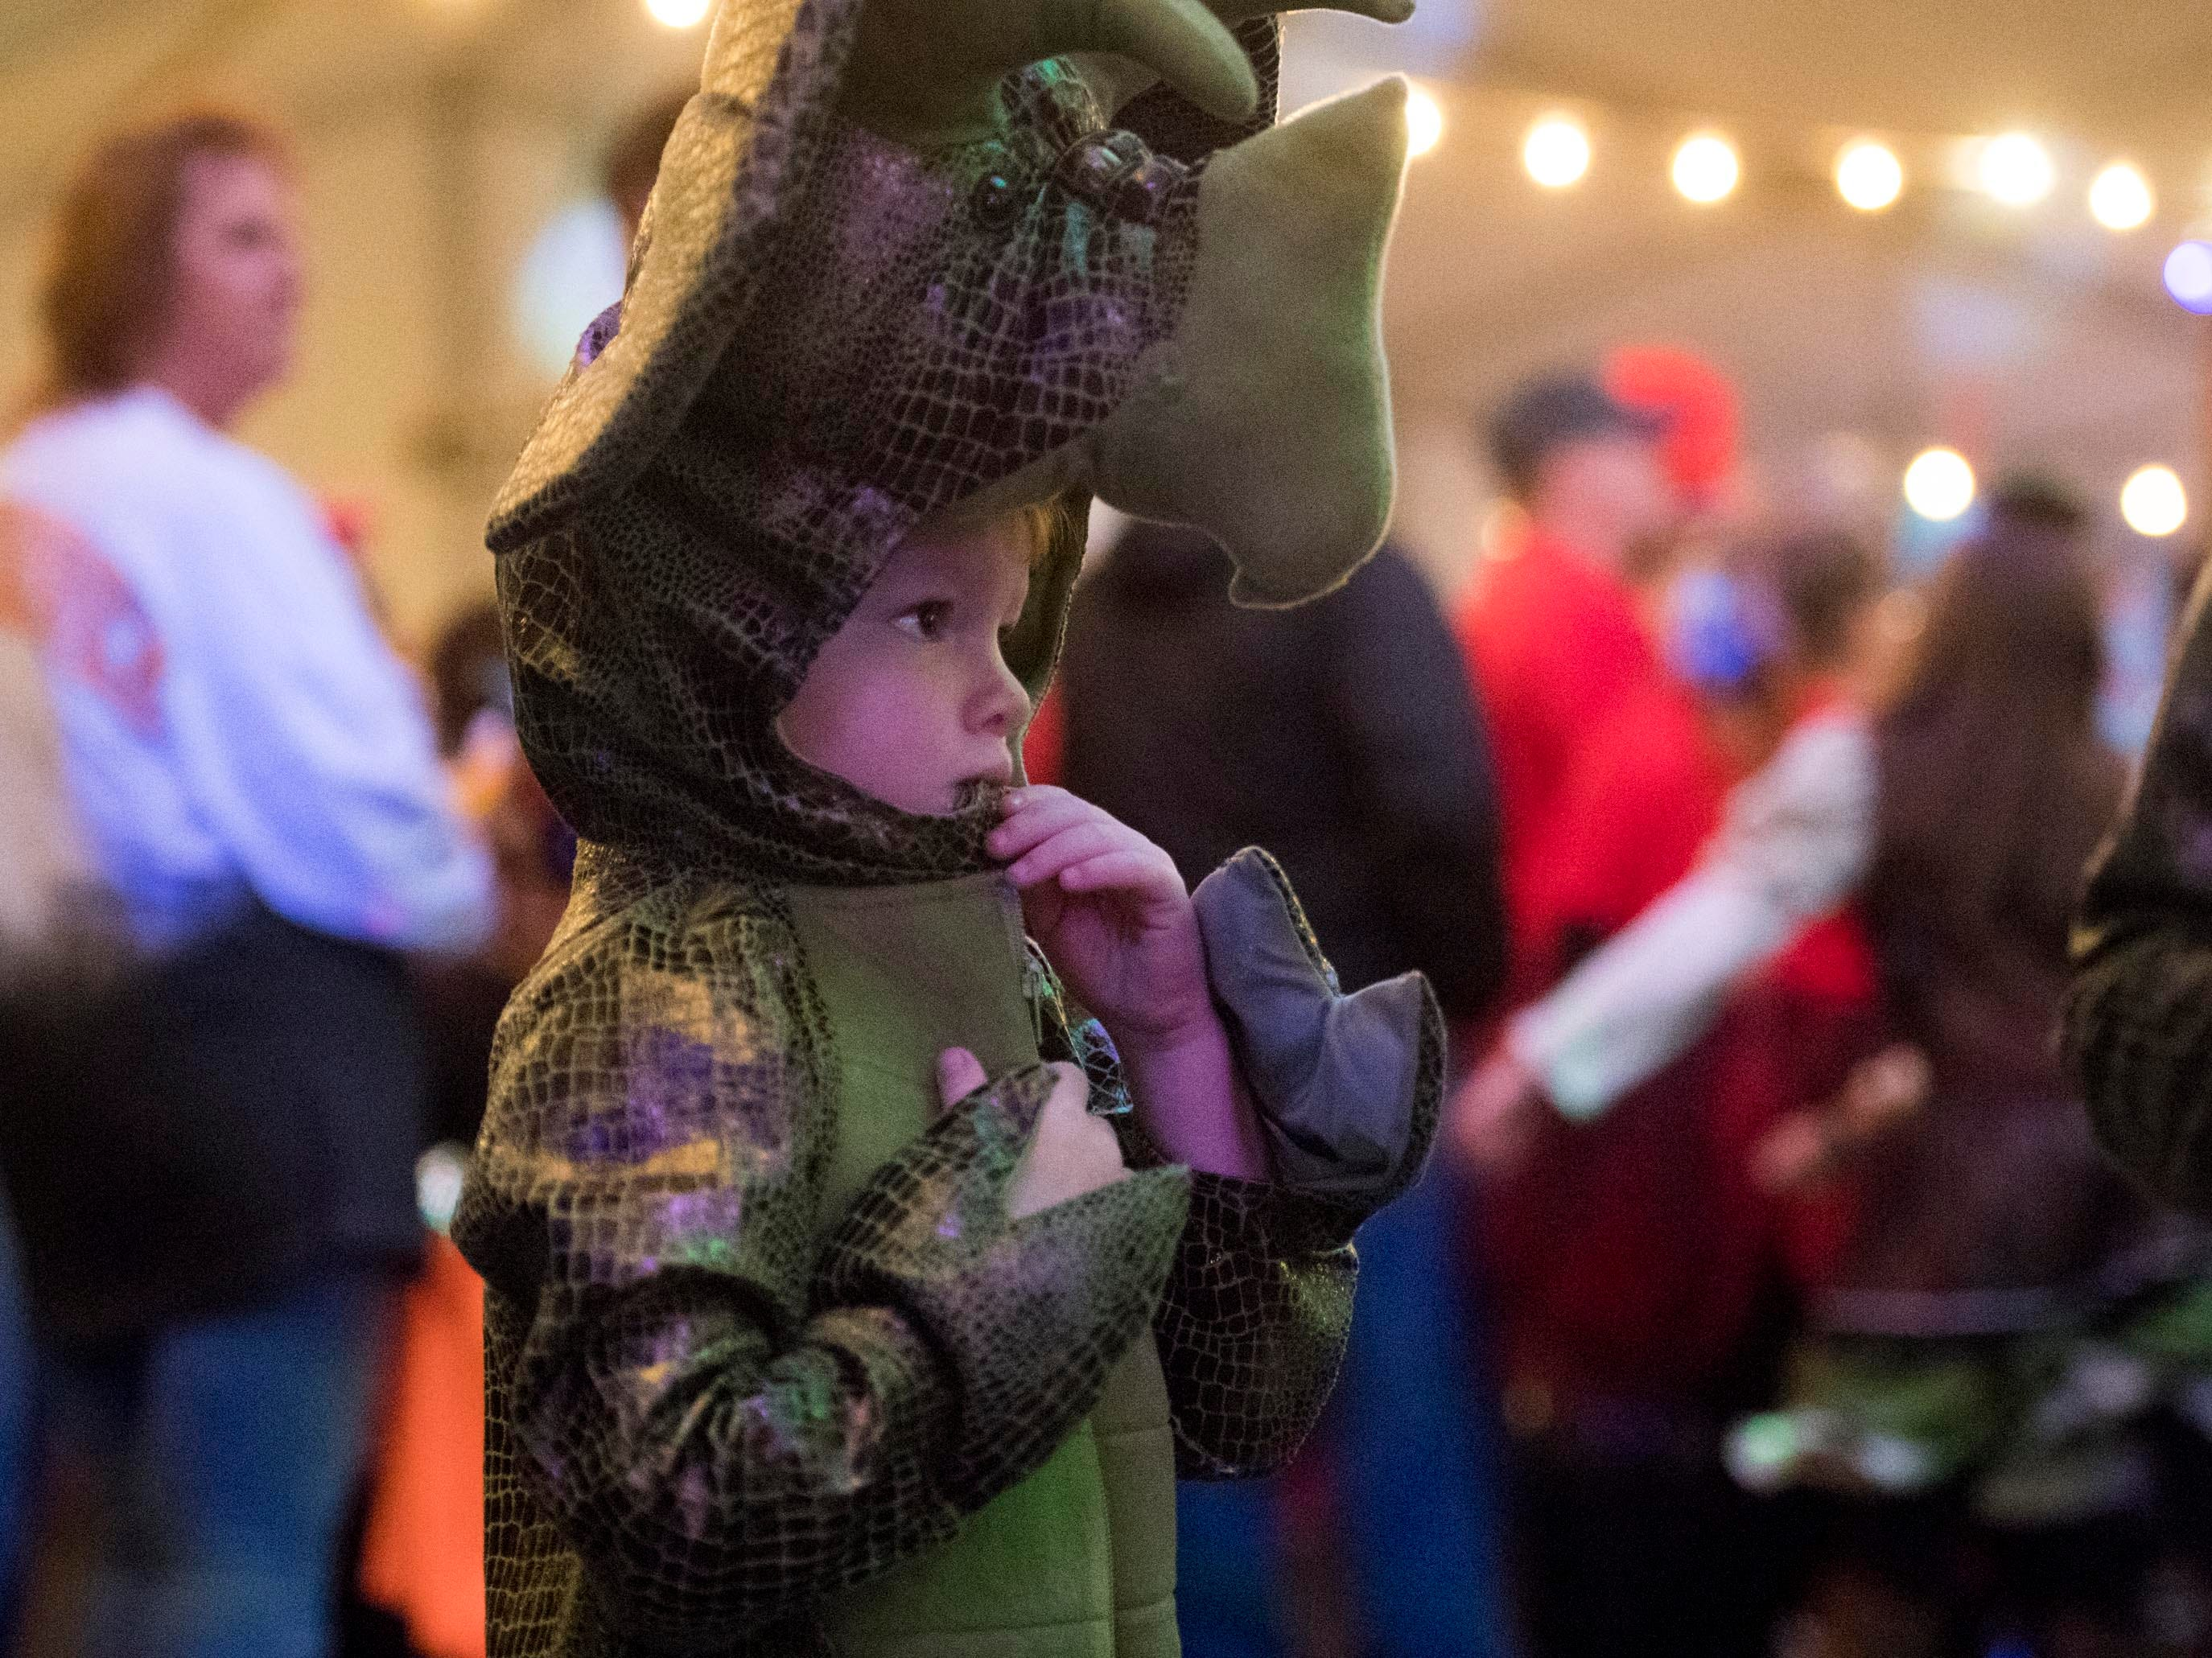 A trick-or-treater attends the Monster Mash dance party at Zoo Knoxville's Boo! at the Zoo on Saturday, October 20, 2018.